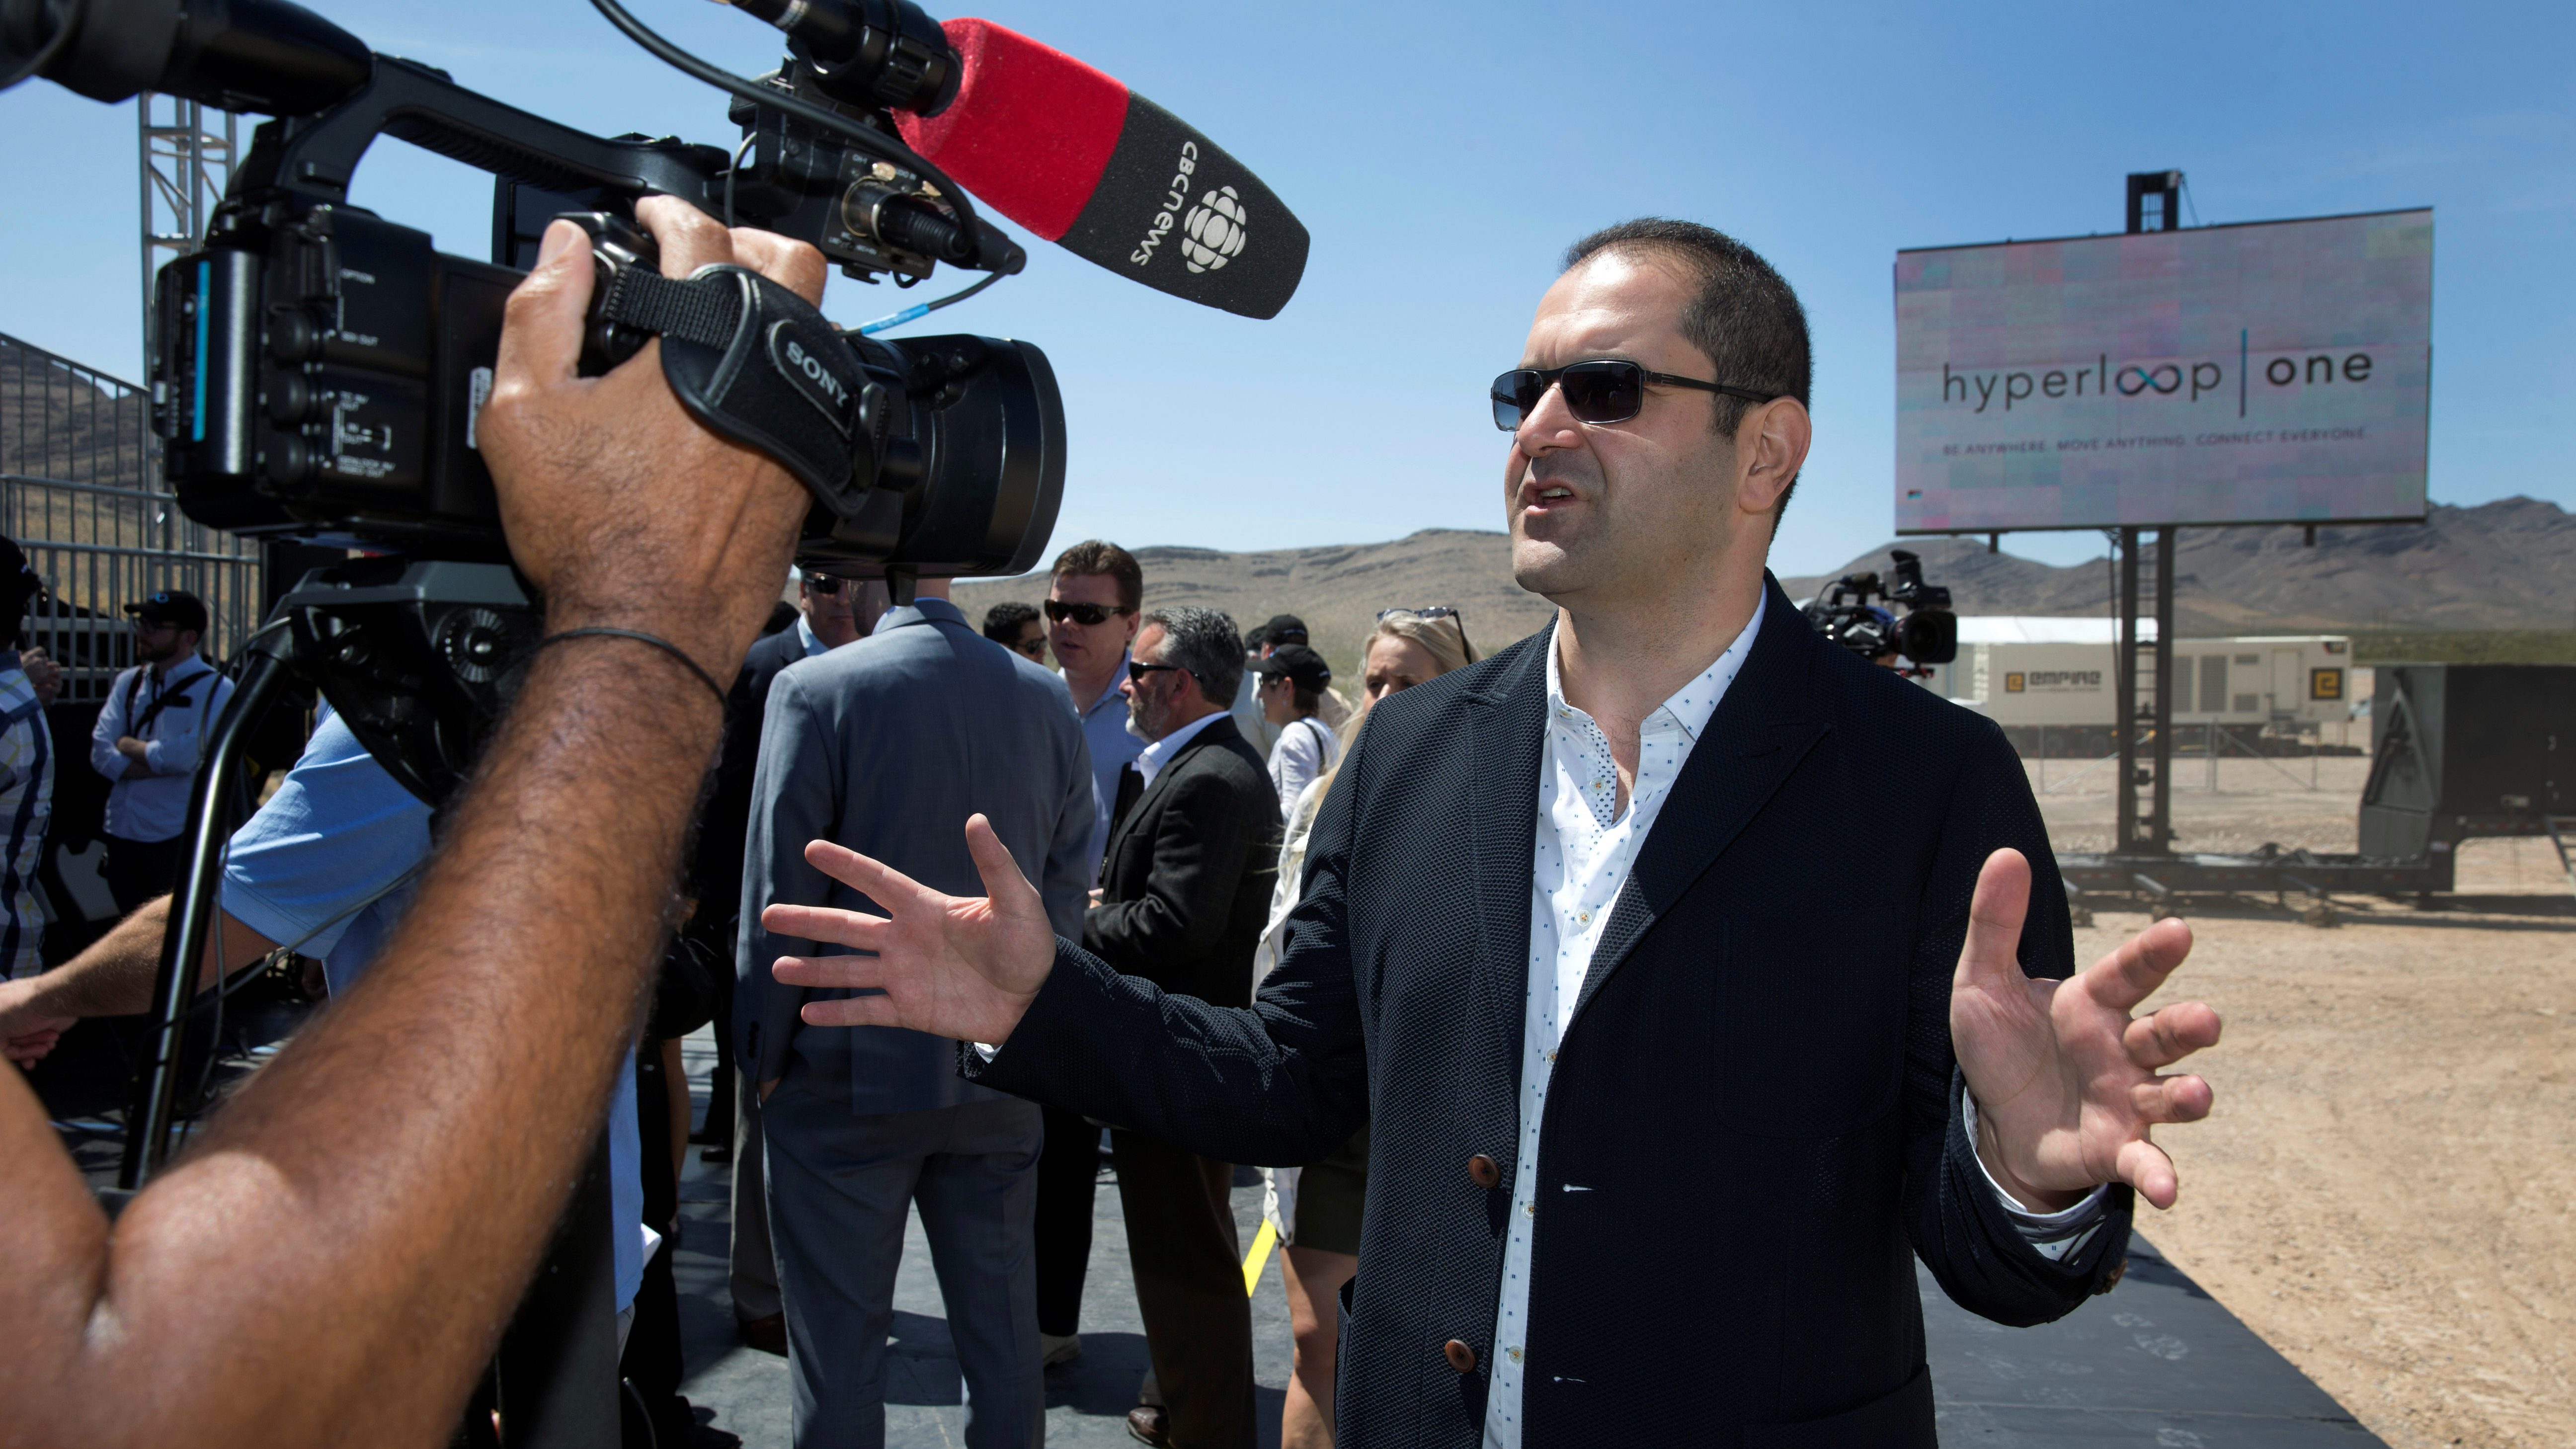 Hyperloop One co-founder Shervin Pishevar speaks to reporters following a propulsion open-air test at Hyperloop One in North Las Vegas, Nevada, U.S. May 11, 2016. REUTERS/Steve Marcus - RTX2DWES